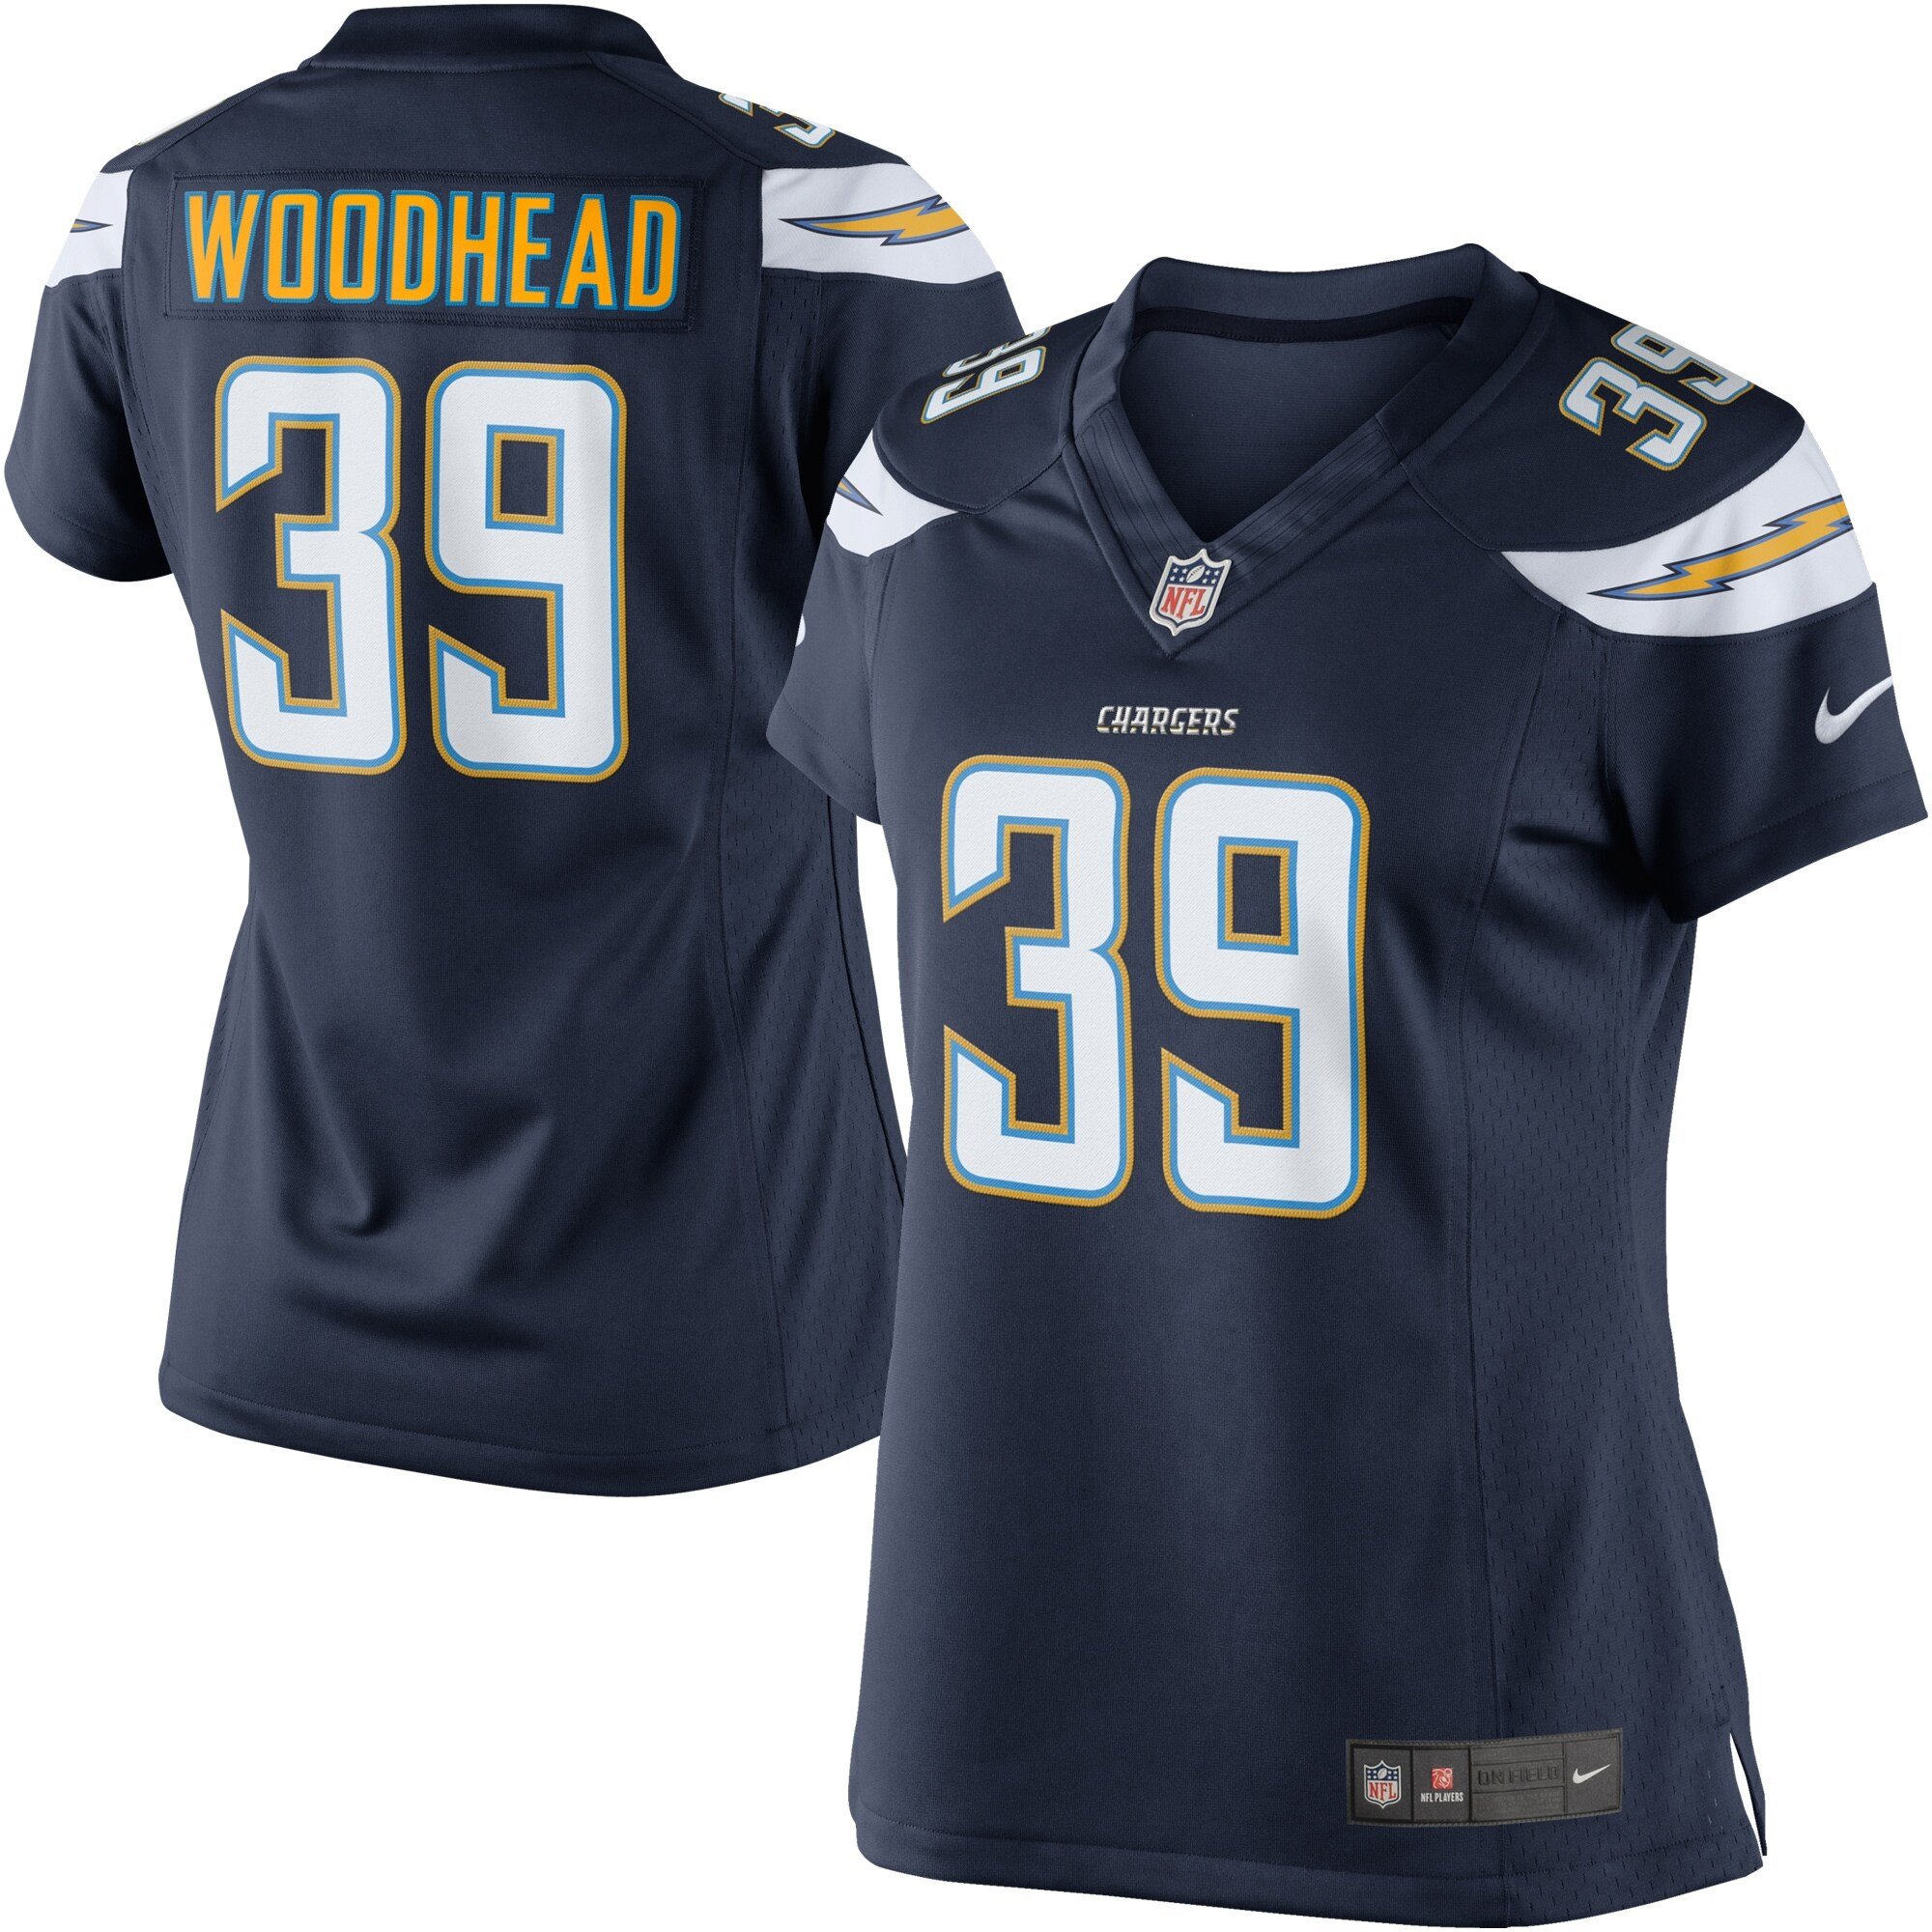 Danny Woodhead Los Angeles Chargers Nike Women's Limited Jersey - Navy Blue